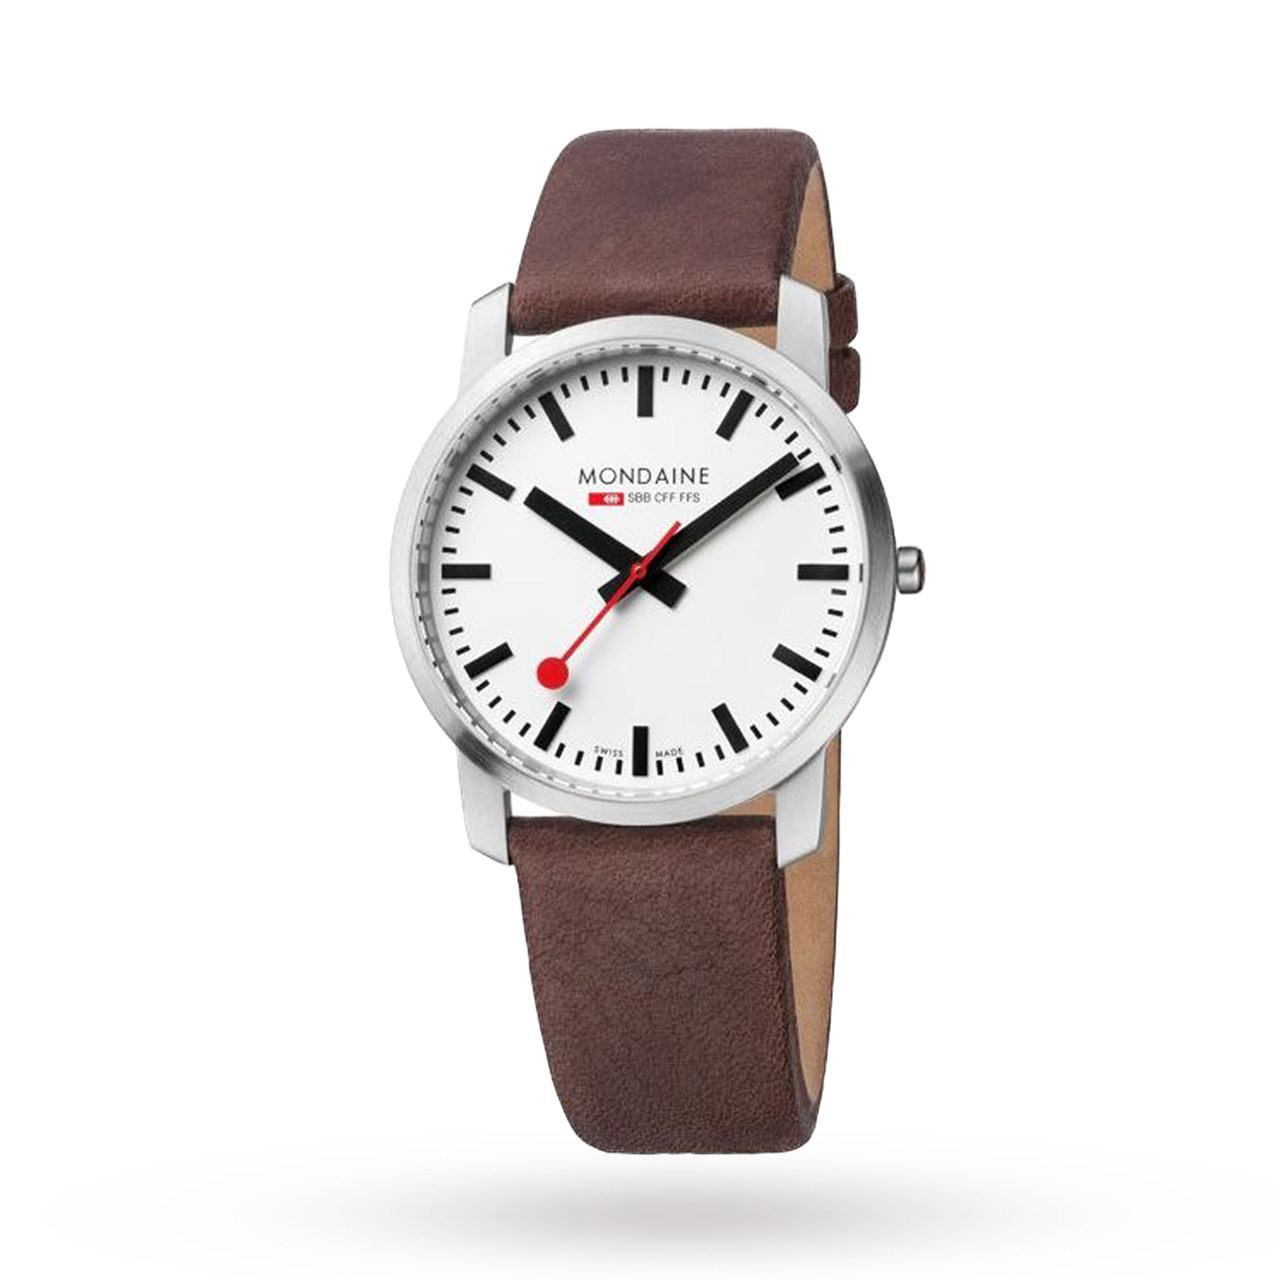 Mondaine Simply Elegant Mens Watch